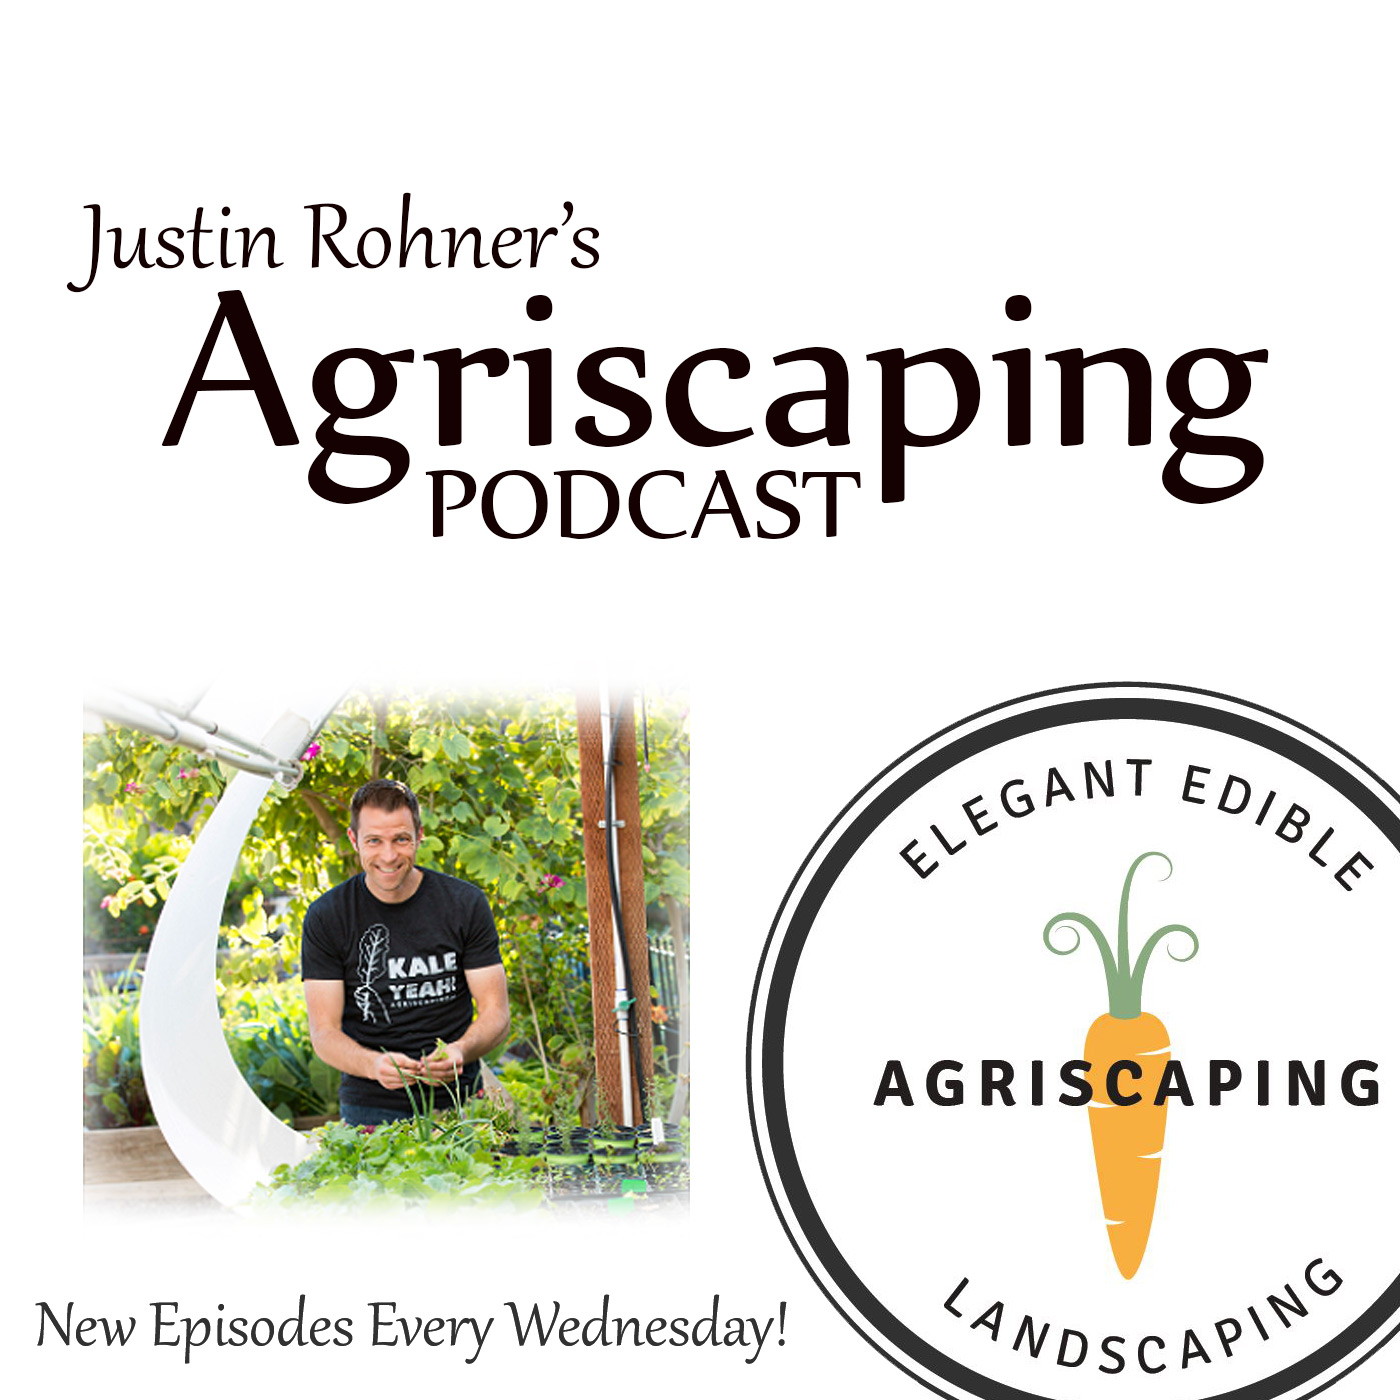 Agriscaping Podcast